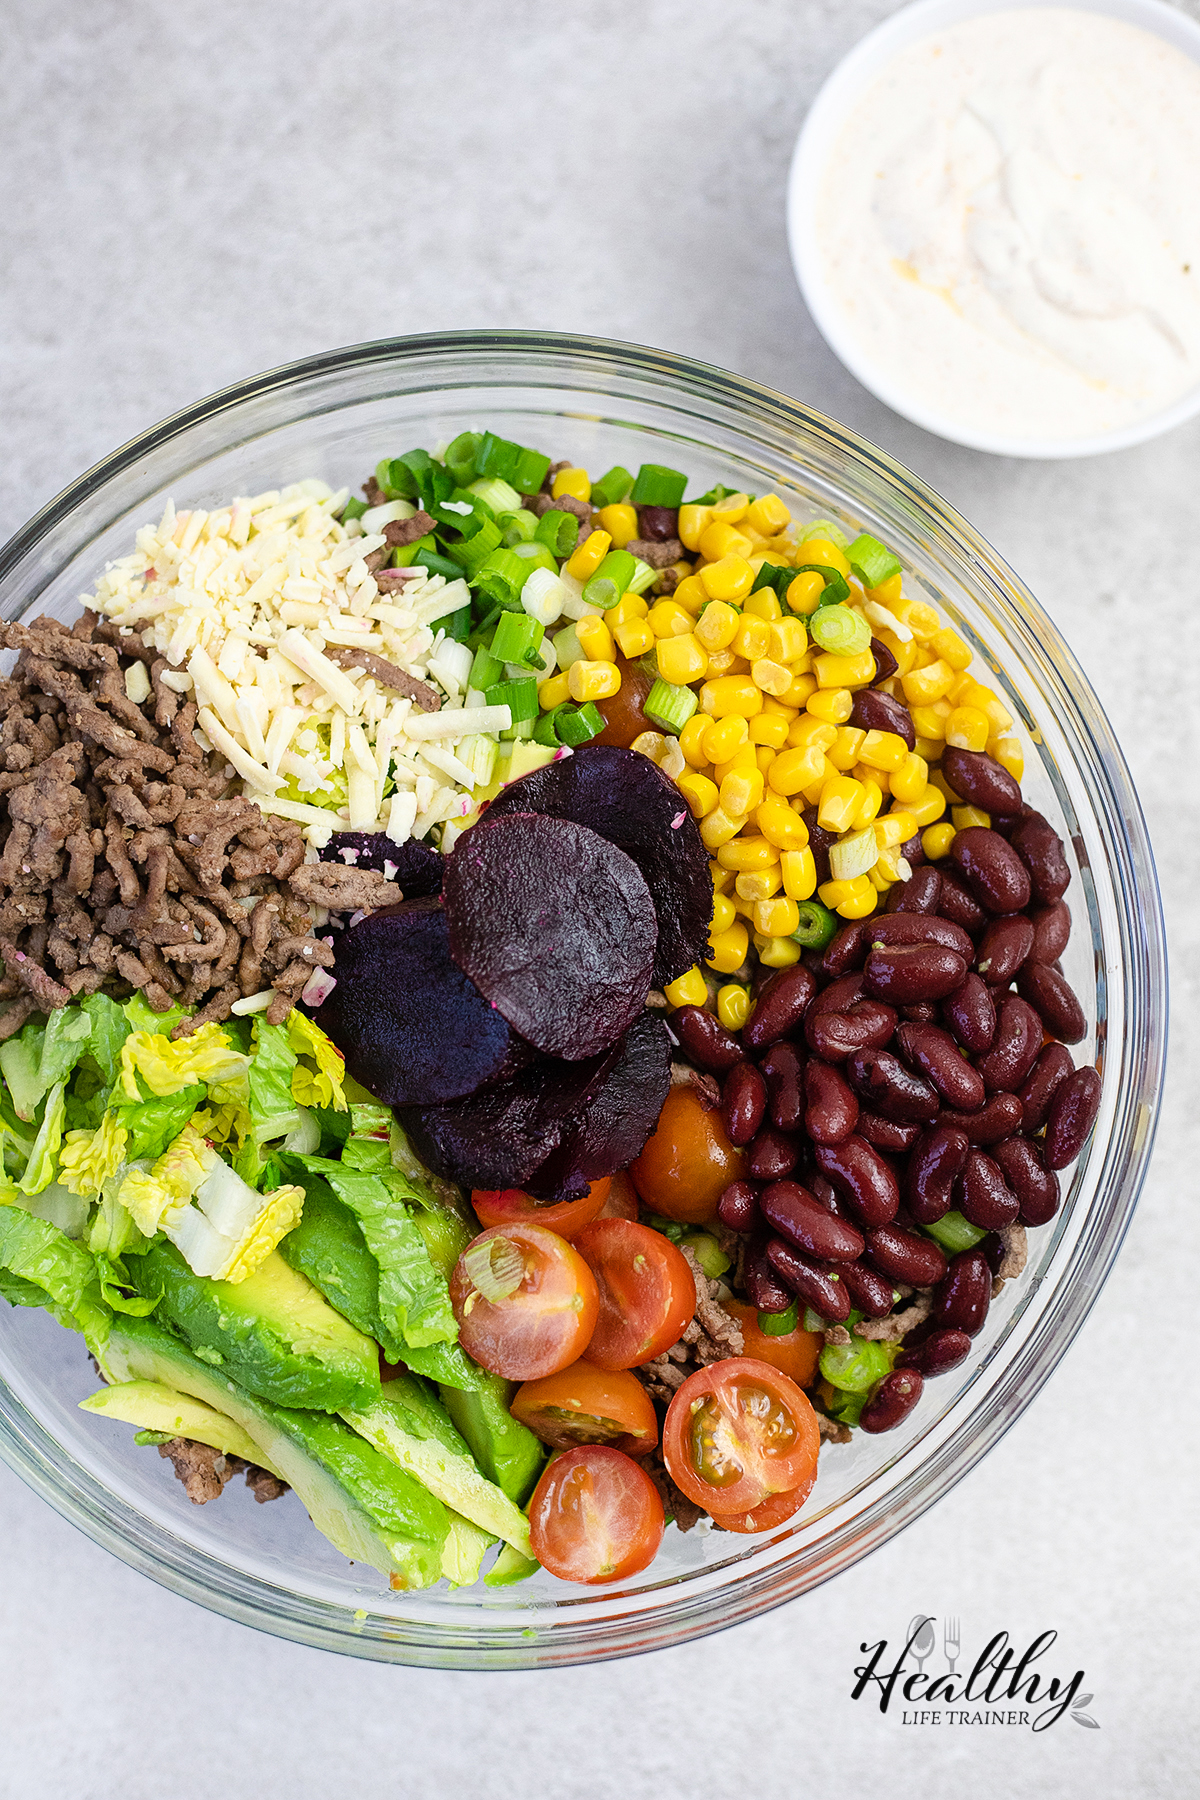 all the salad ingredients #saladrecipe #easysalad #tacosalad #tacobowl #healthysalad